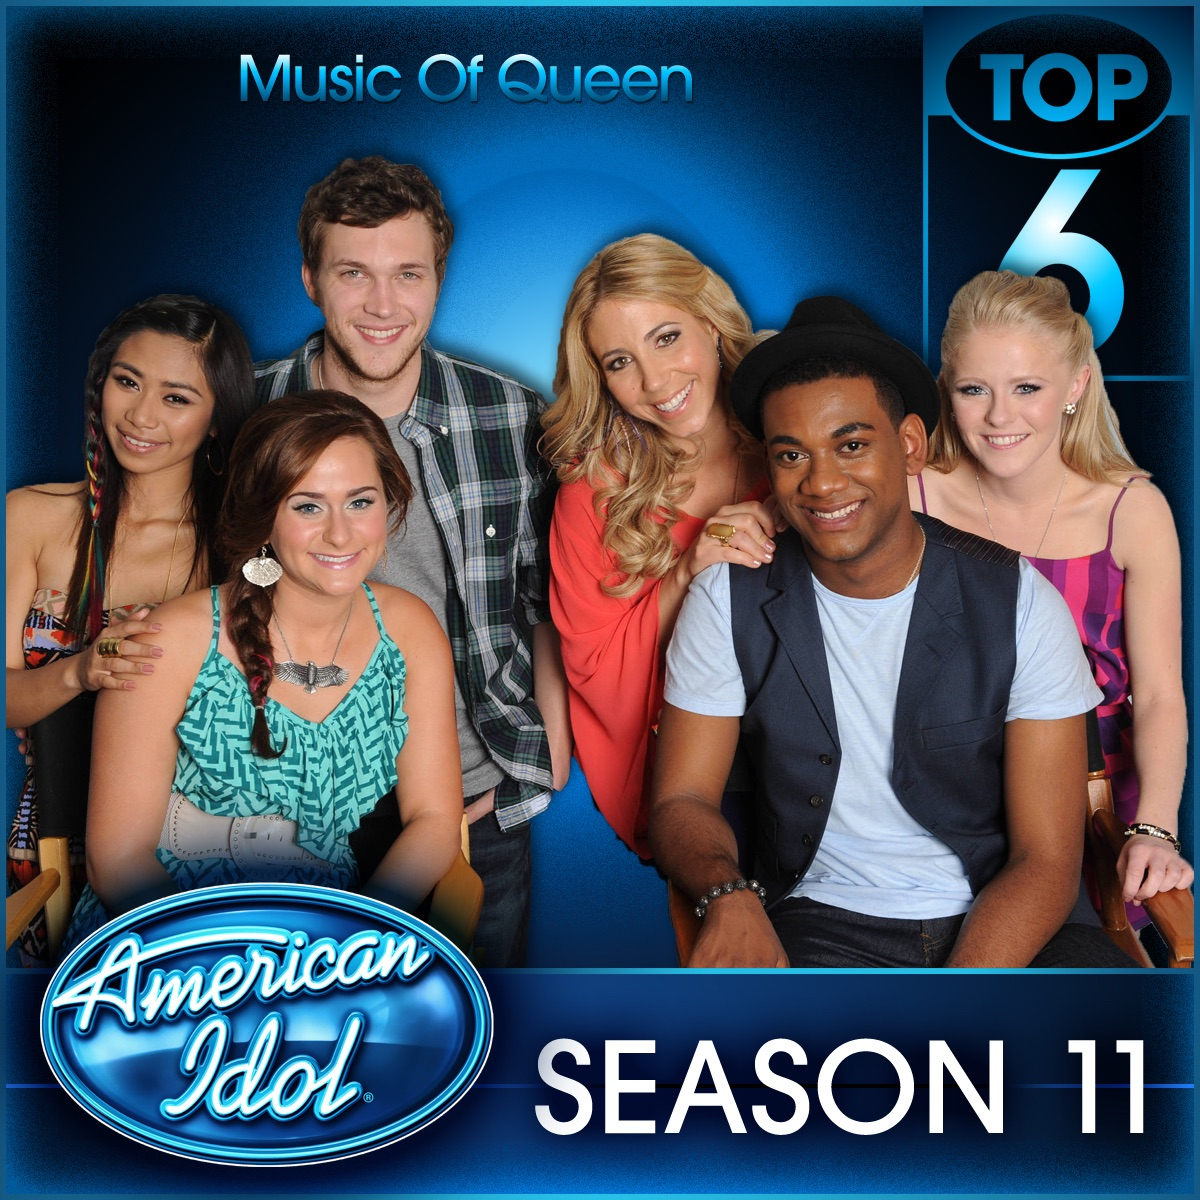 American Idol Top 6 Music of Queen - Season 11 - EP Various Artists CD cover